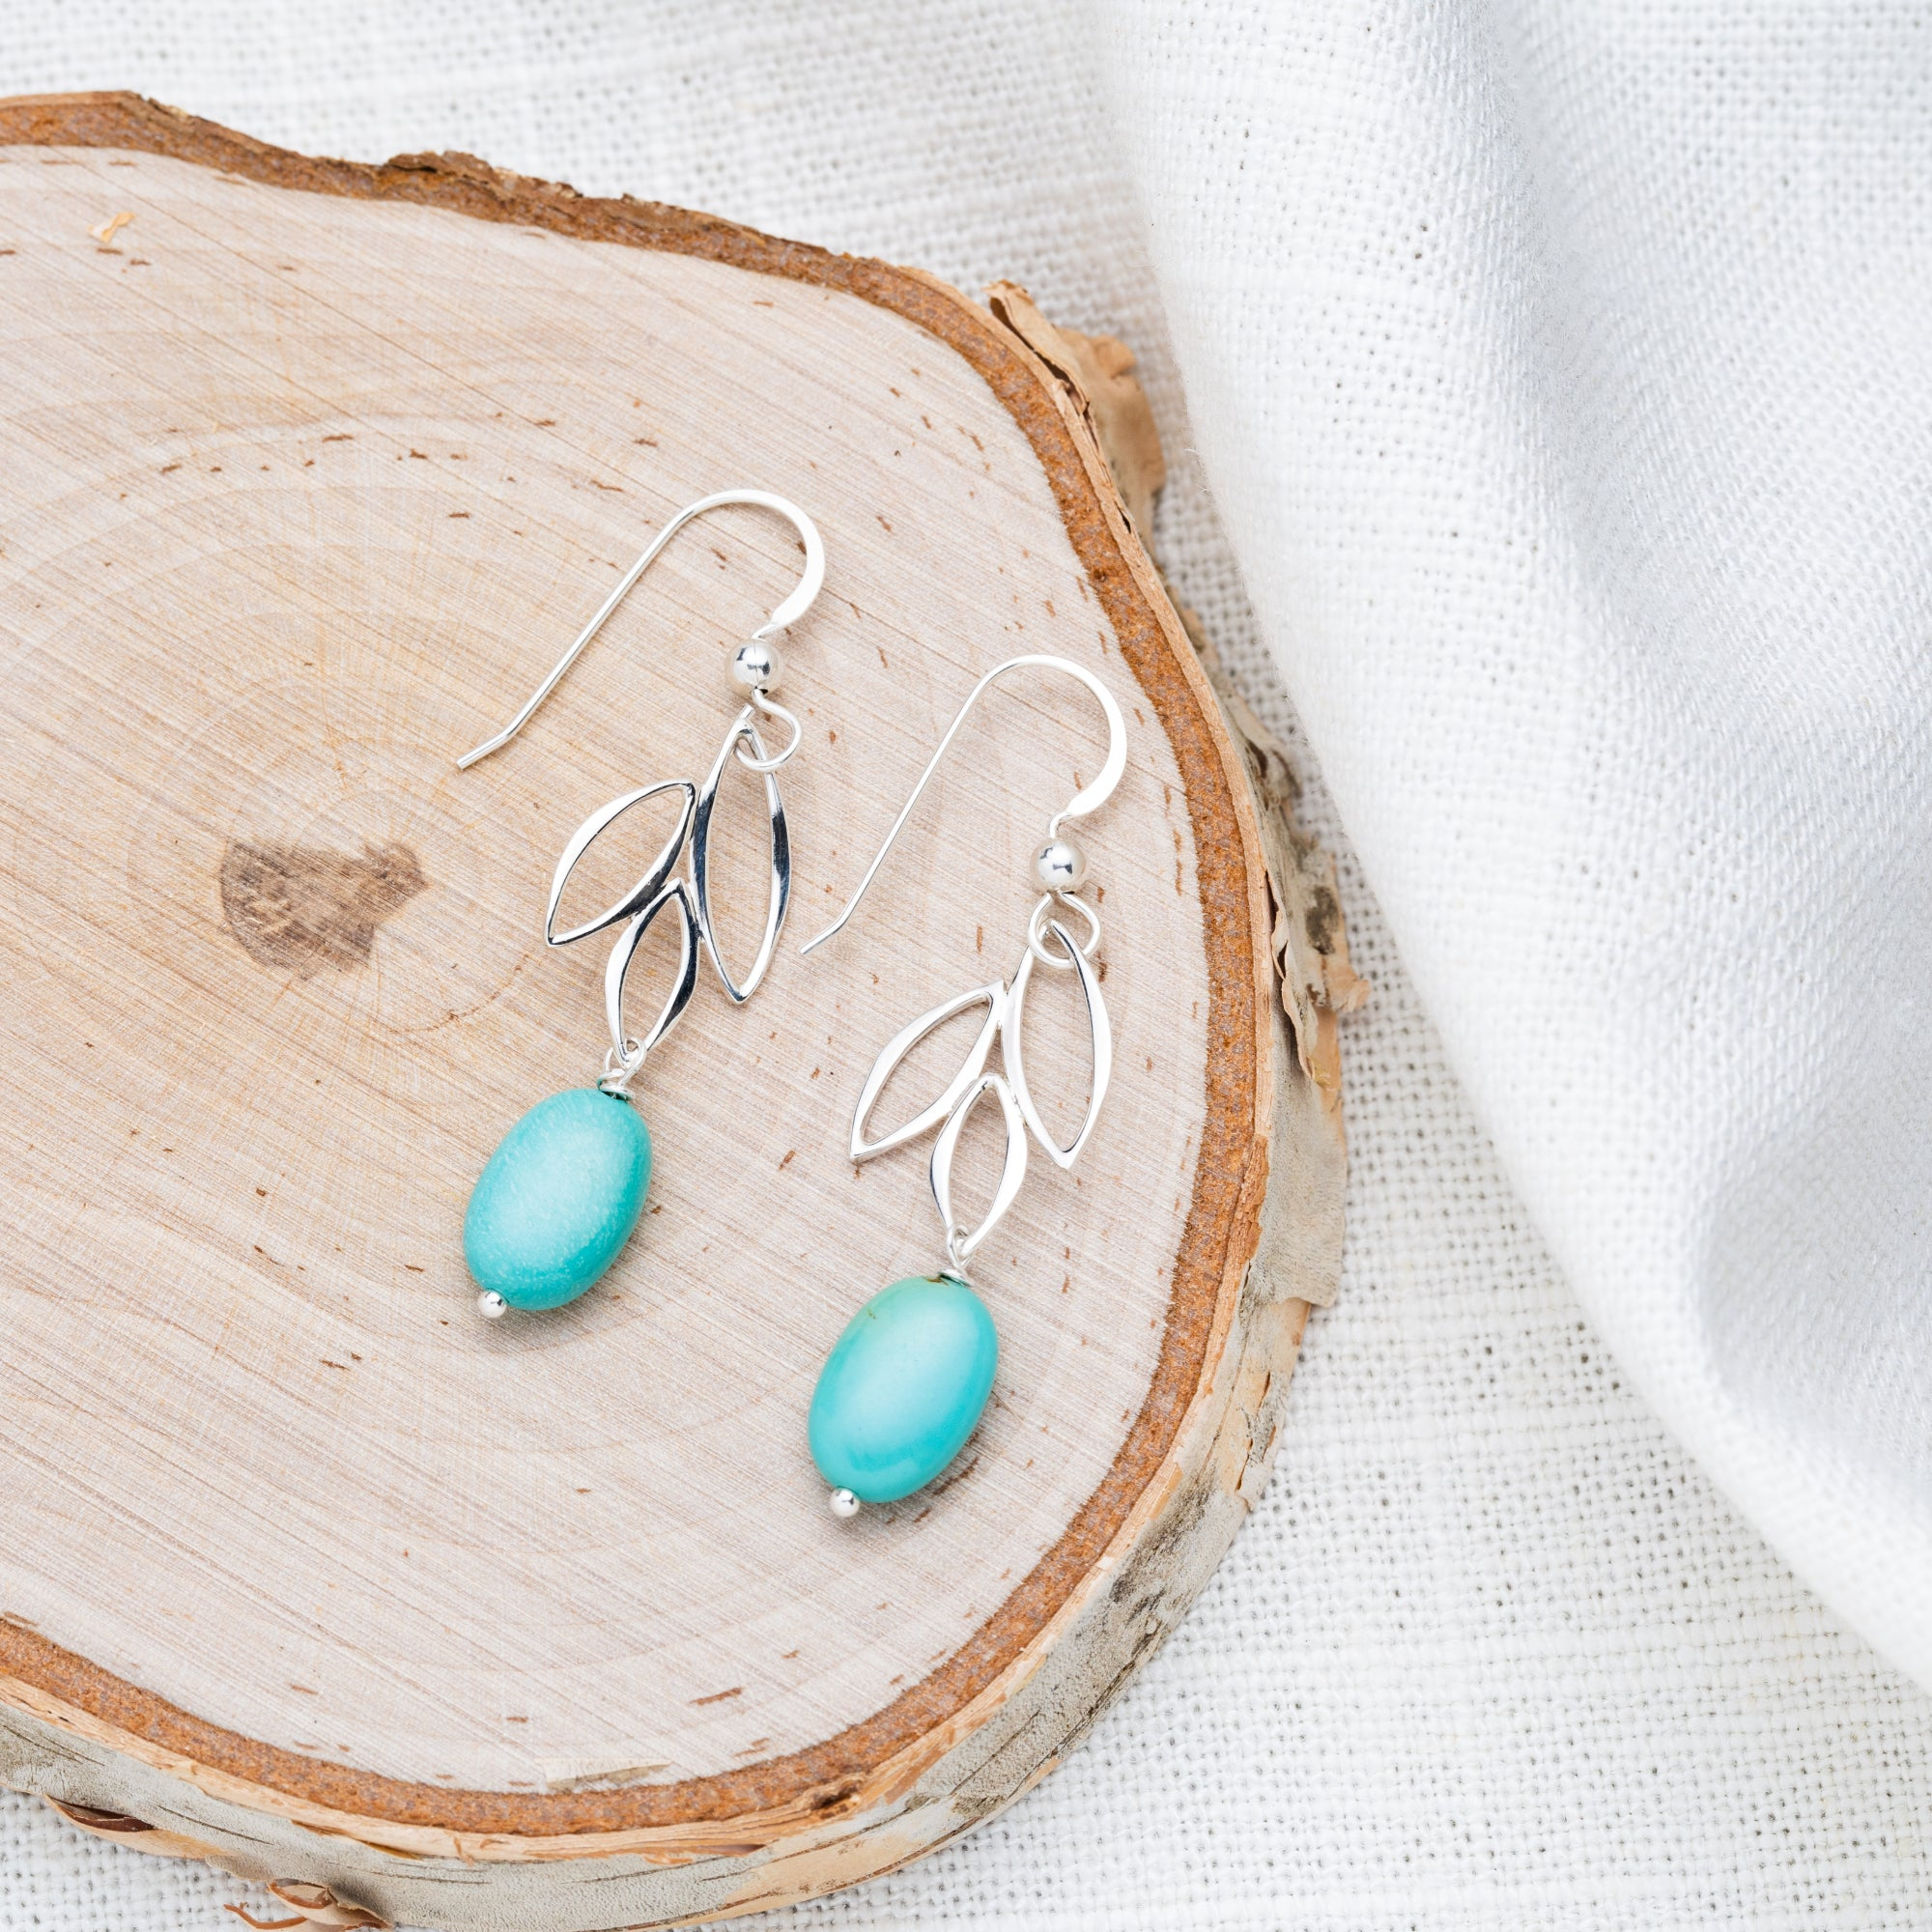 Turquoise Sterling Silver Marquis Earrings | Well-Being, Balance